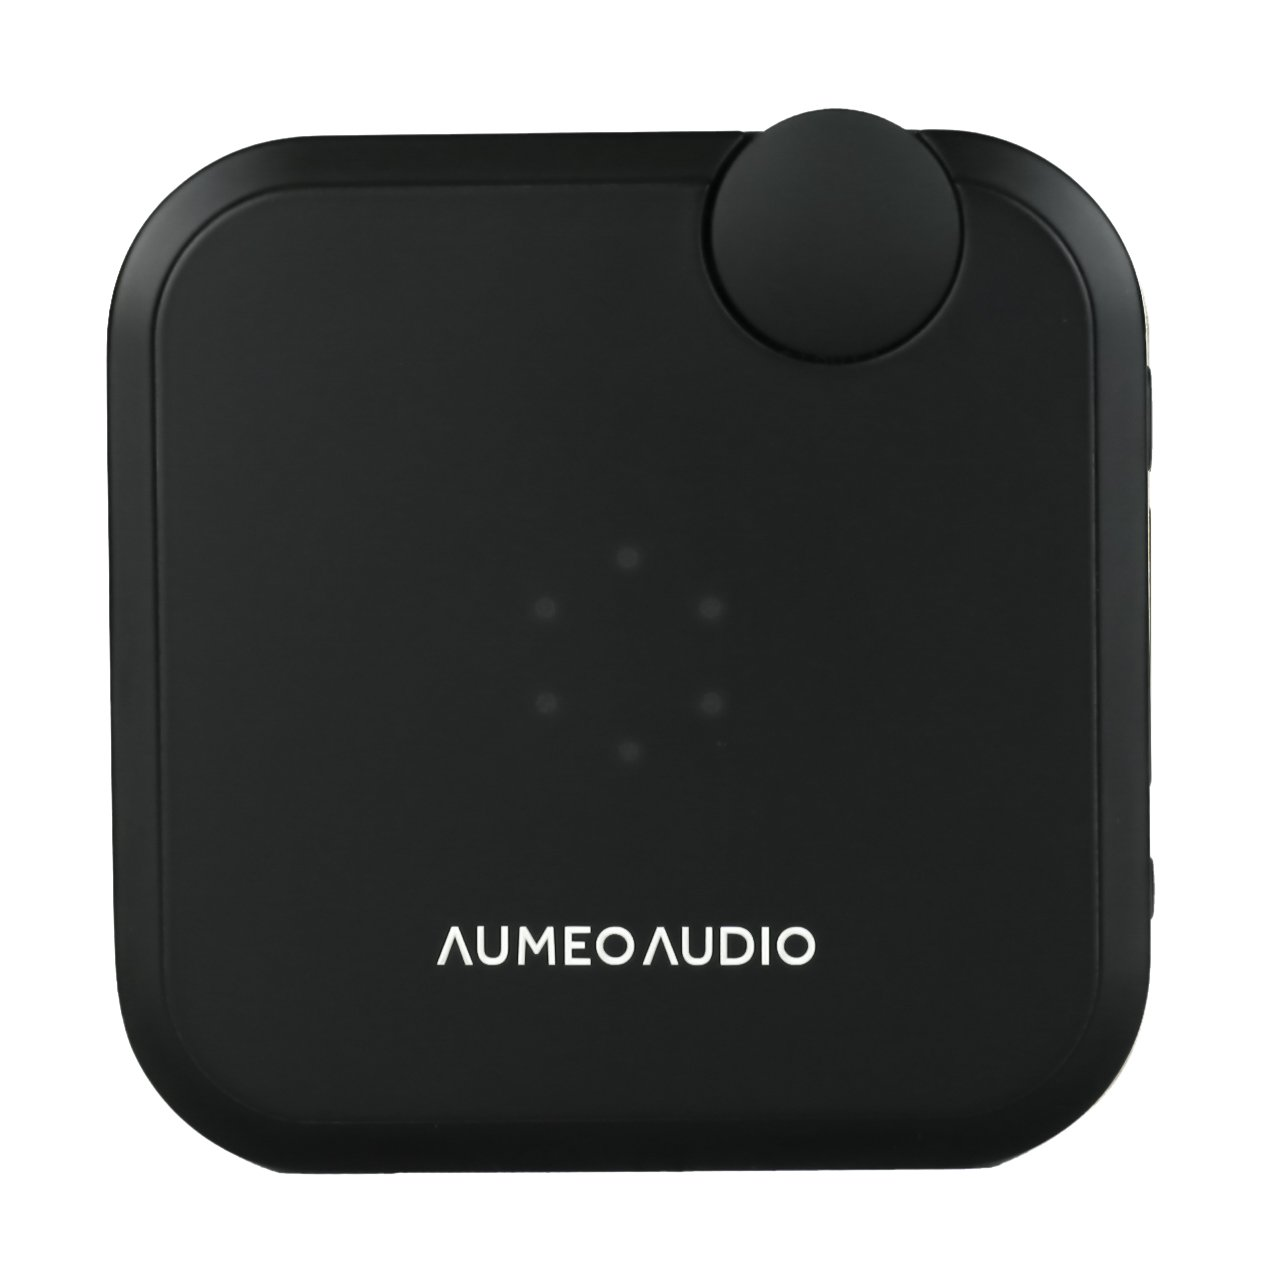 Aumeo Audio Tailored Audio Device and Headphone Personalizer, Bluetooth / 3.5mm Audio Dongle for iPhone, Android and More - Black